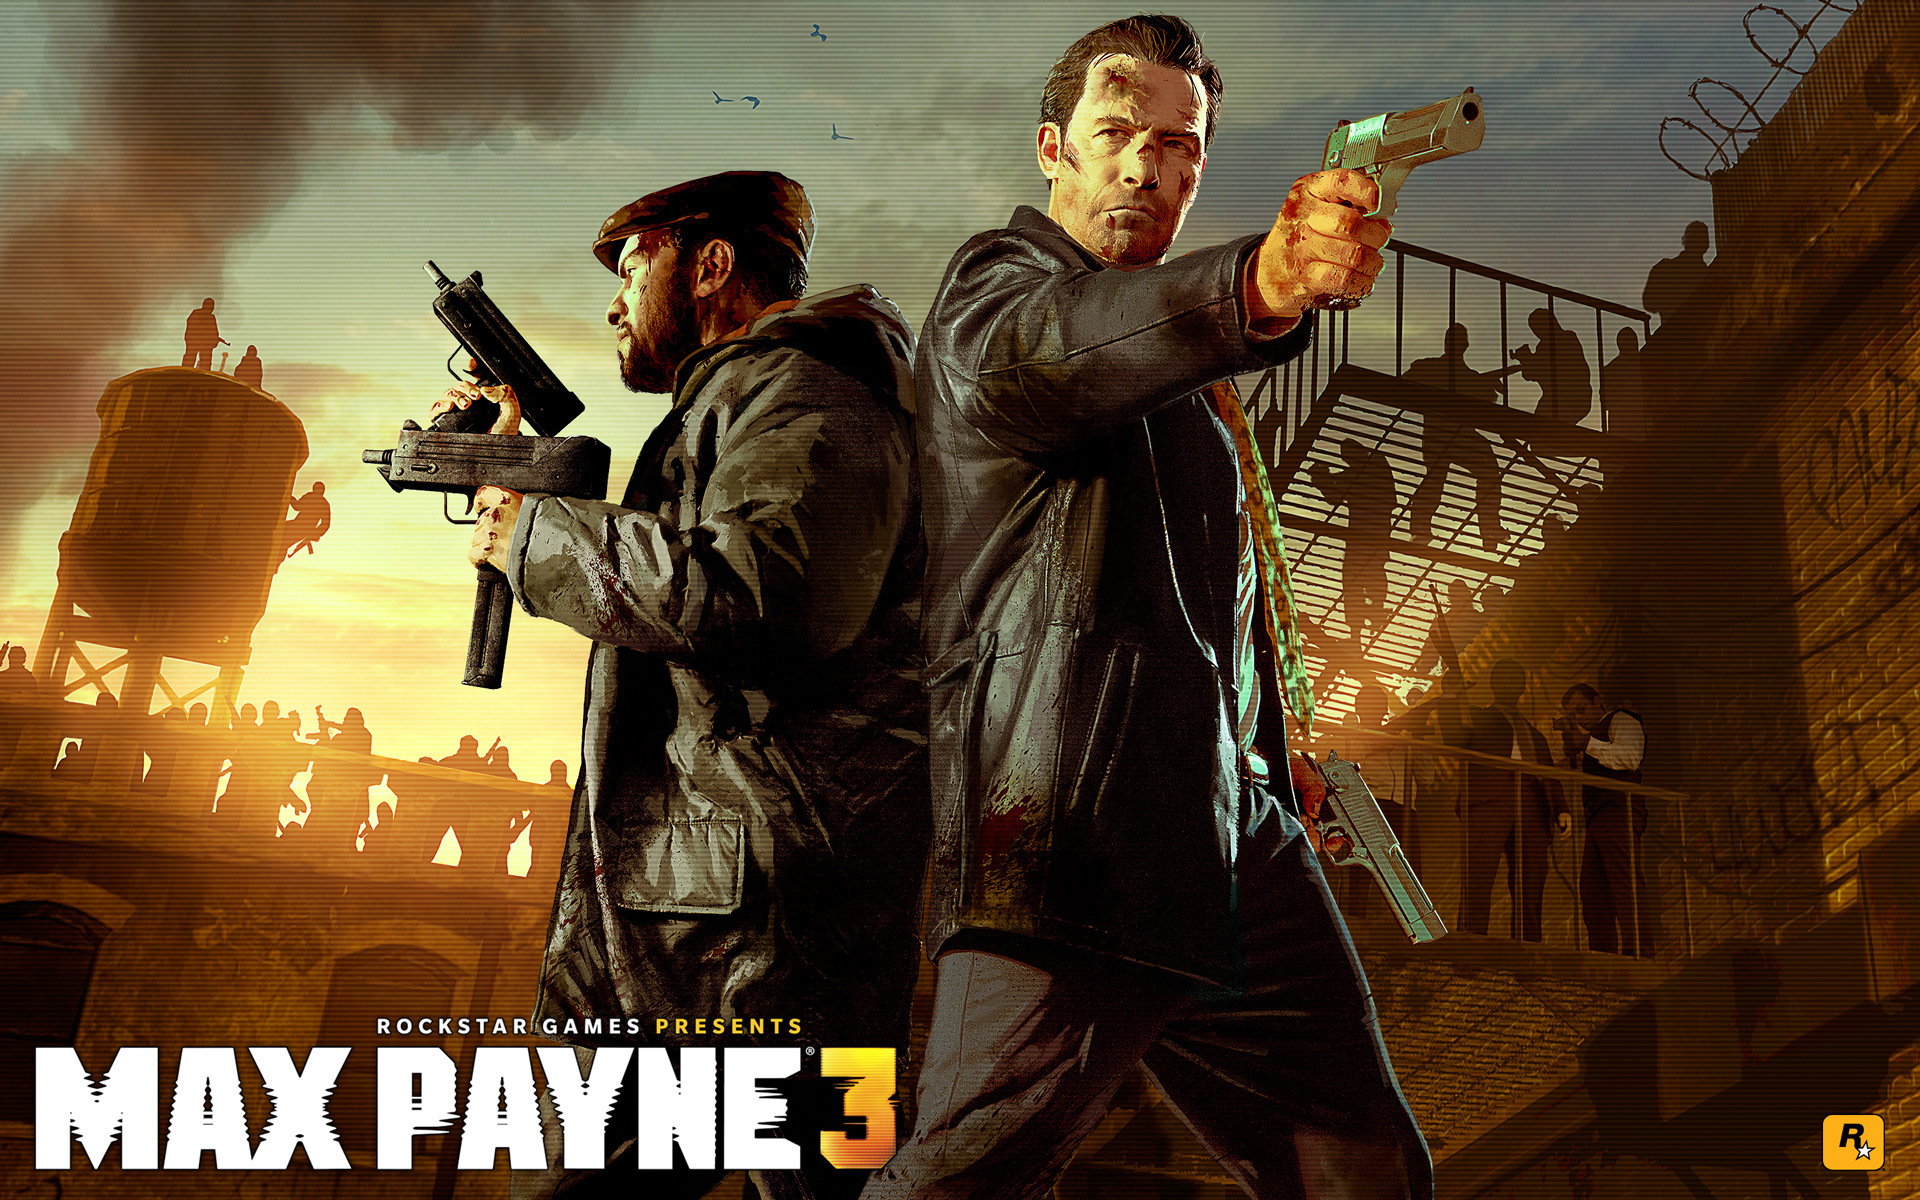 max-payne-3-deathmatch-made-in-heaven-1920x1200.jpg